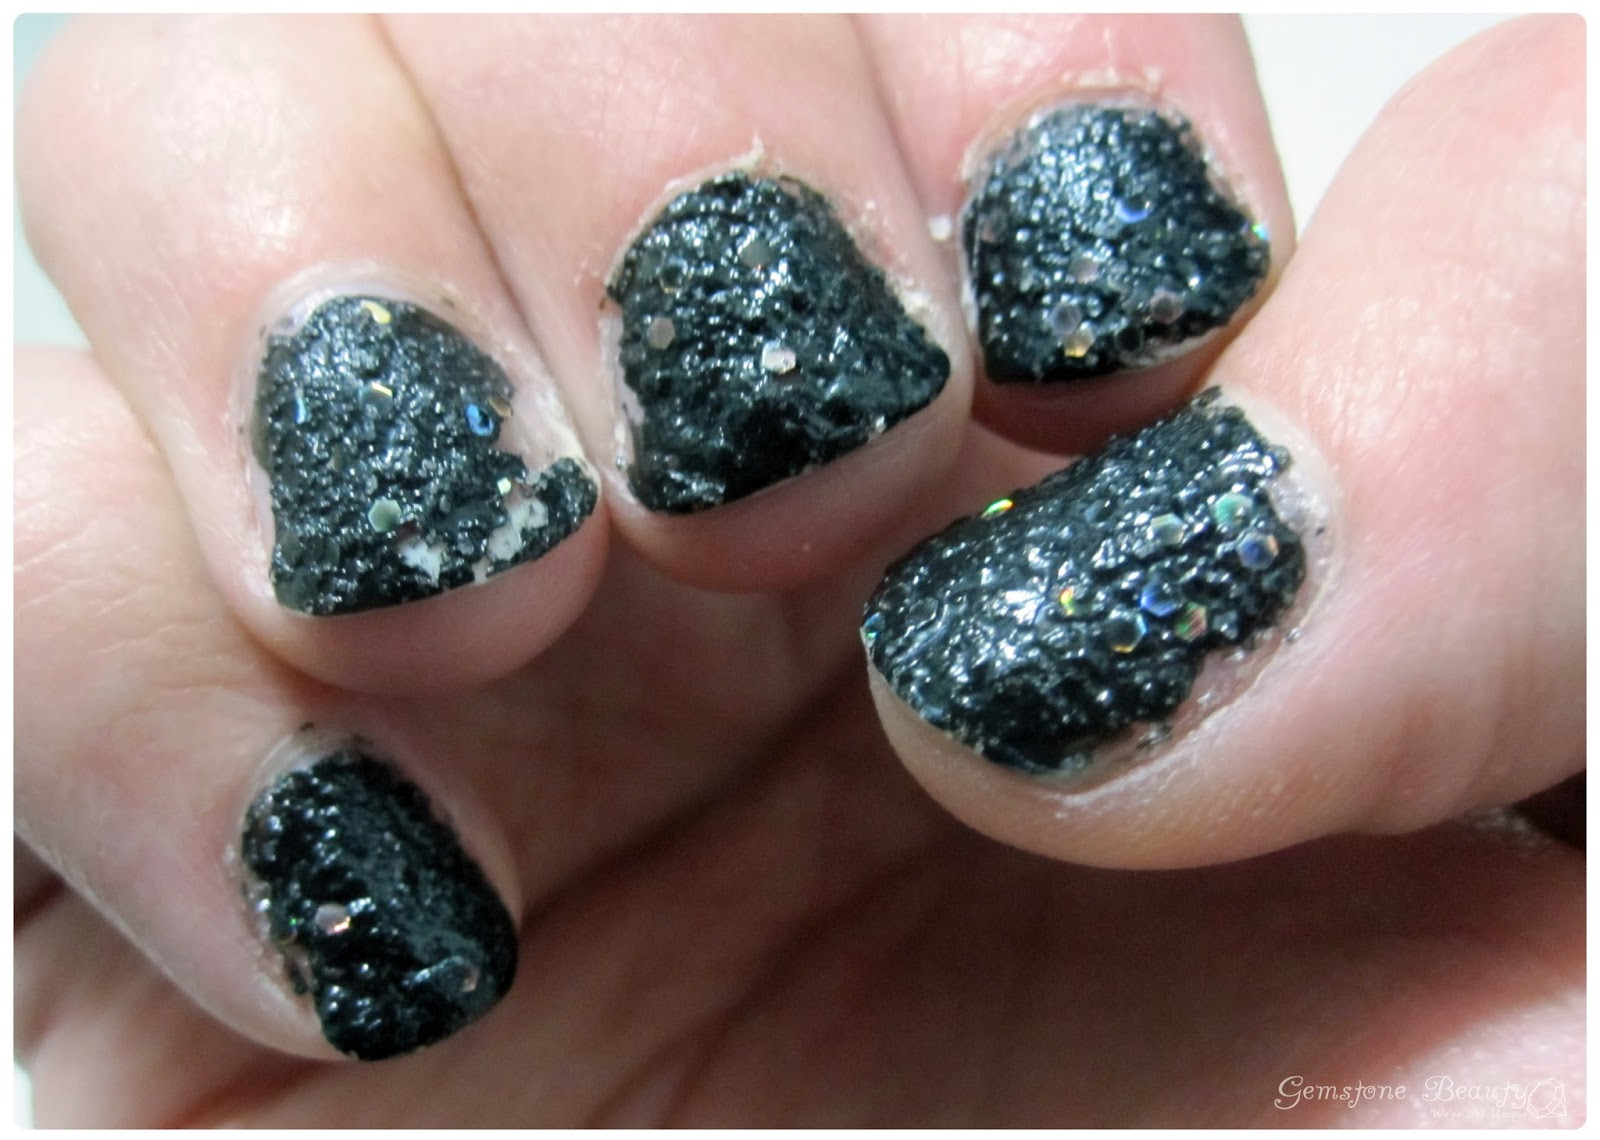 Gemstone Beauty Quite Possibly The Worst Nail Polish Ever